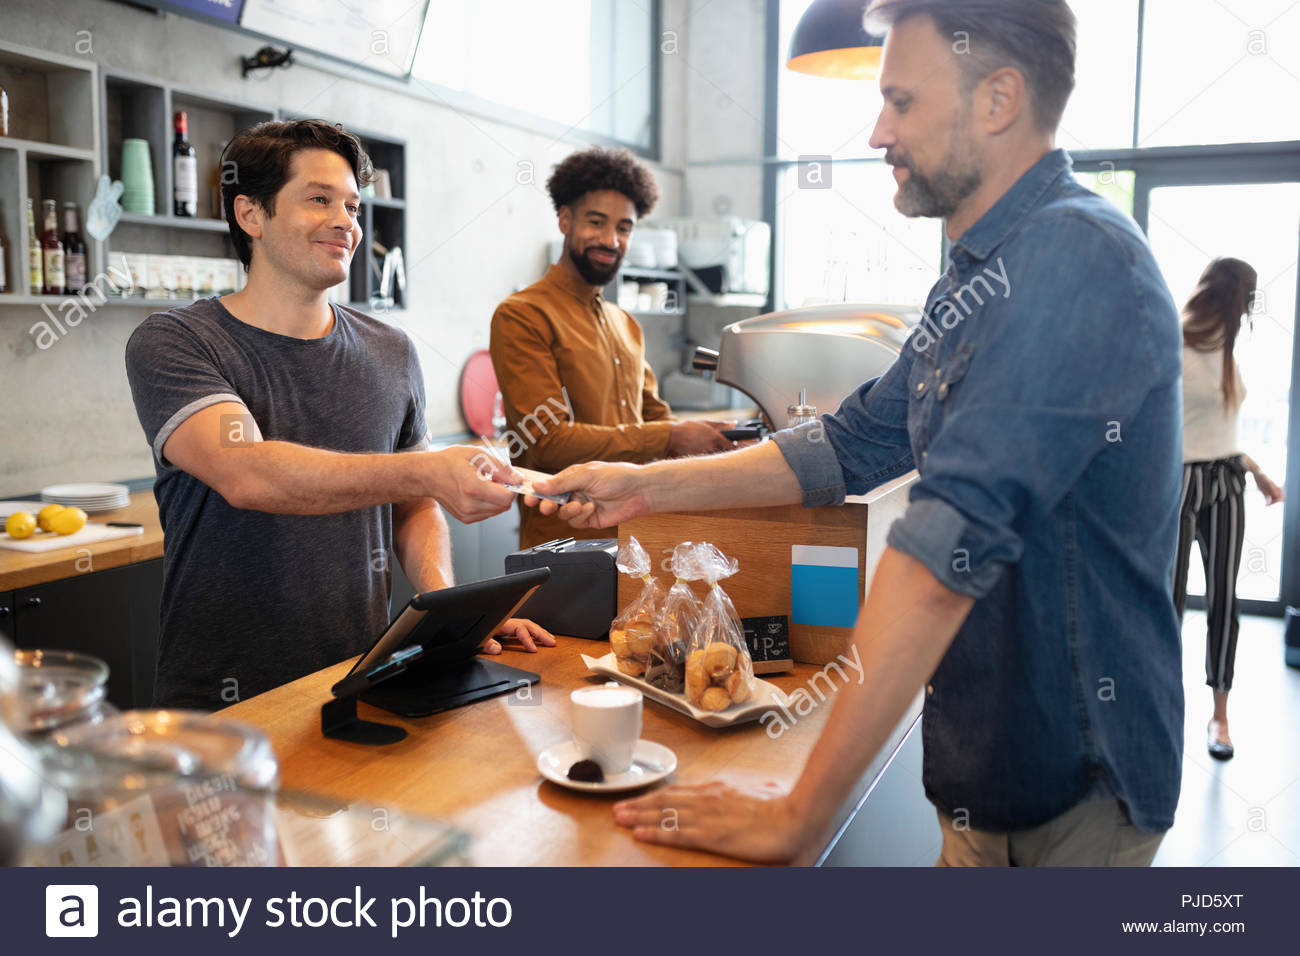 Customer paying for coffee in cafe - Stock Image